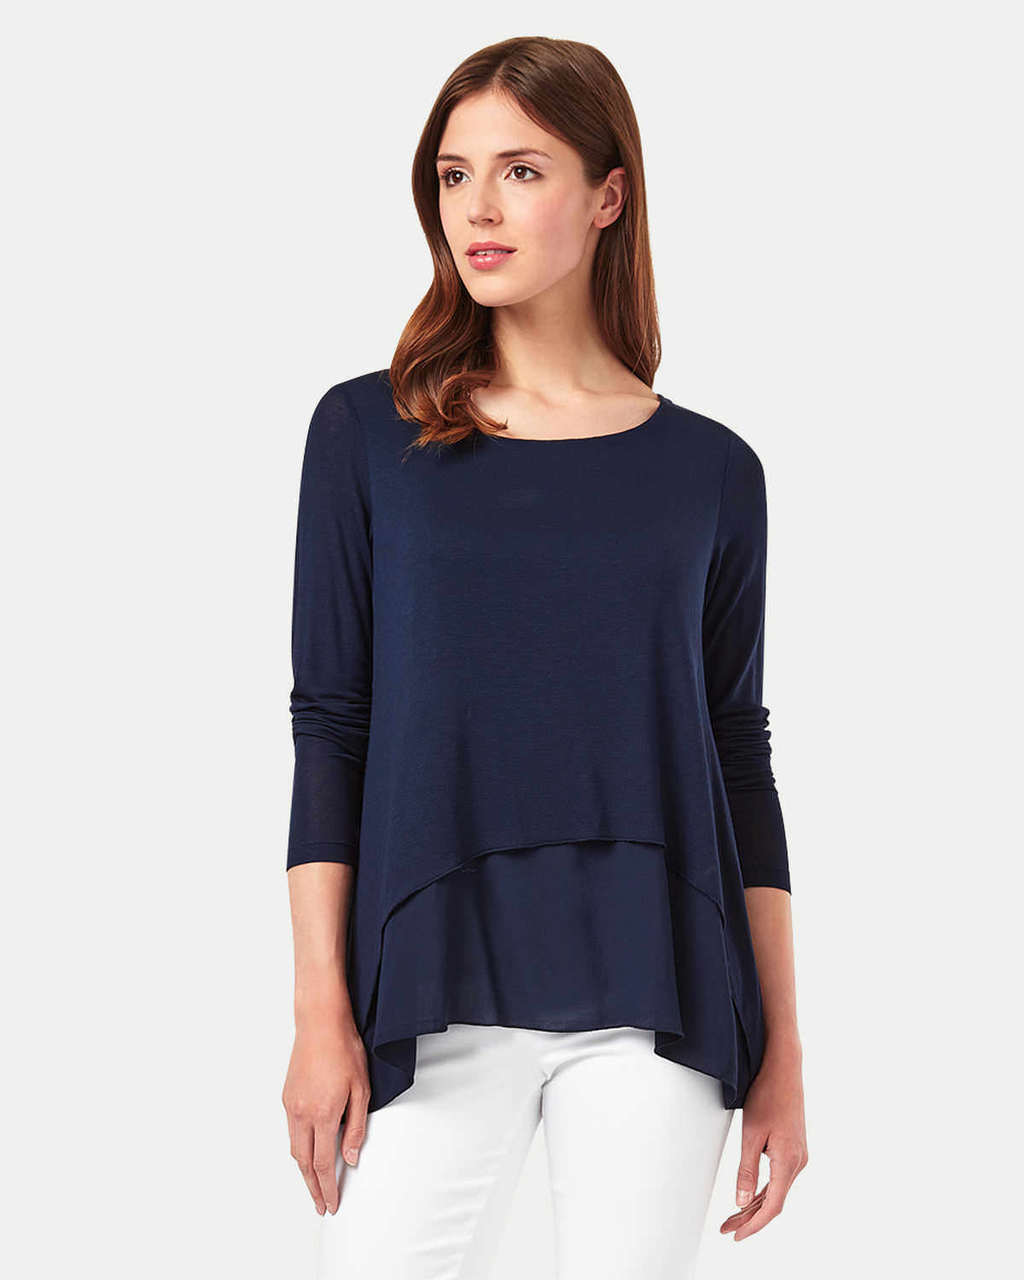 Ciera Plain Top - pattern: plain; predominant colour: navy; occasions: casual; length: standard; style: top; fibres: viscose/rayon - stretch; fit: body skimming; neckline: crew; sleeve length: long sleeve; sleeve style: standard; pattern type: fabric; texture group: jersey - stretchy/drapey; season: s/s 2016; wardrobe: basic